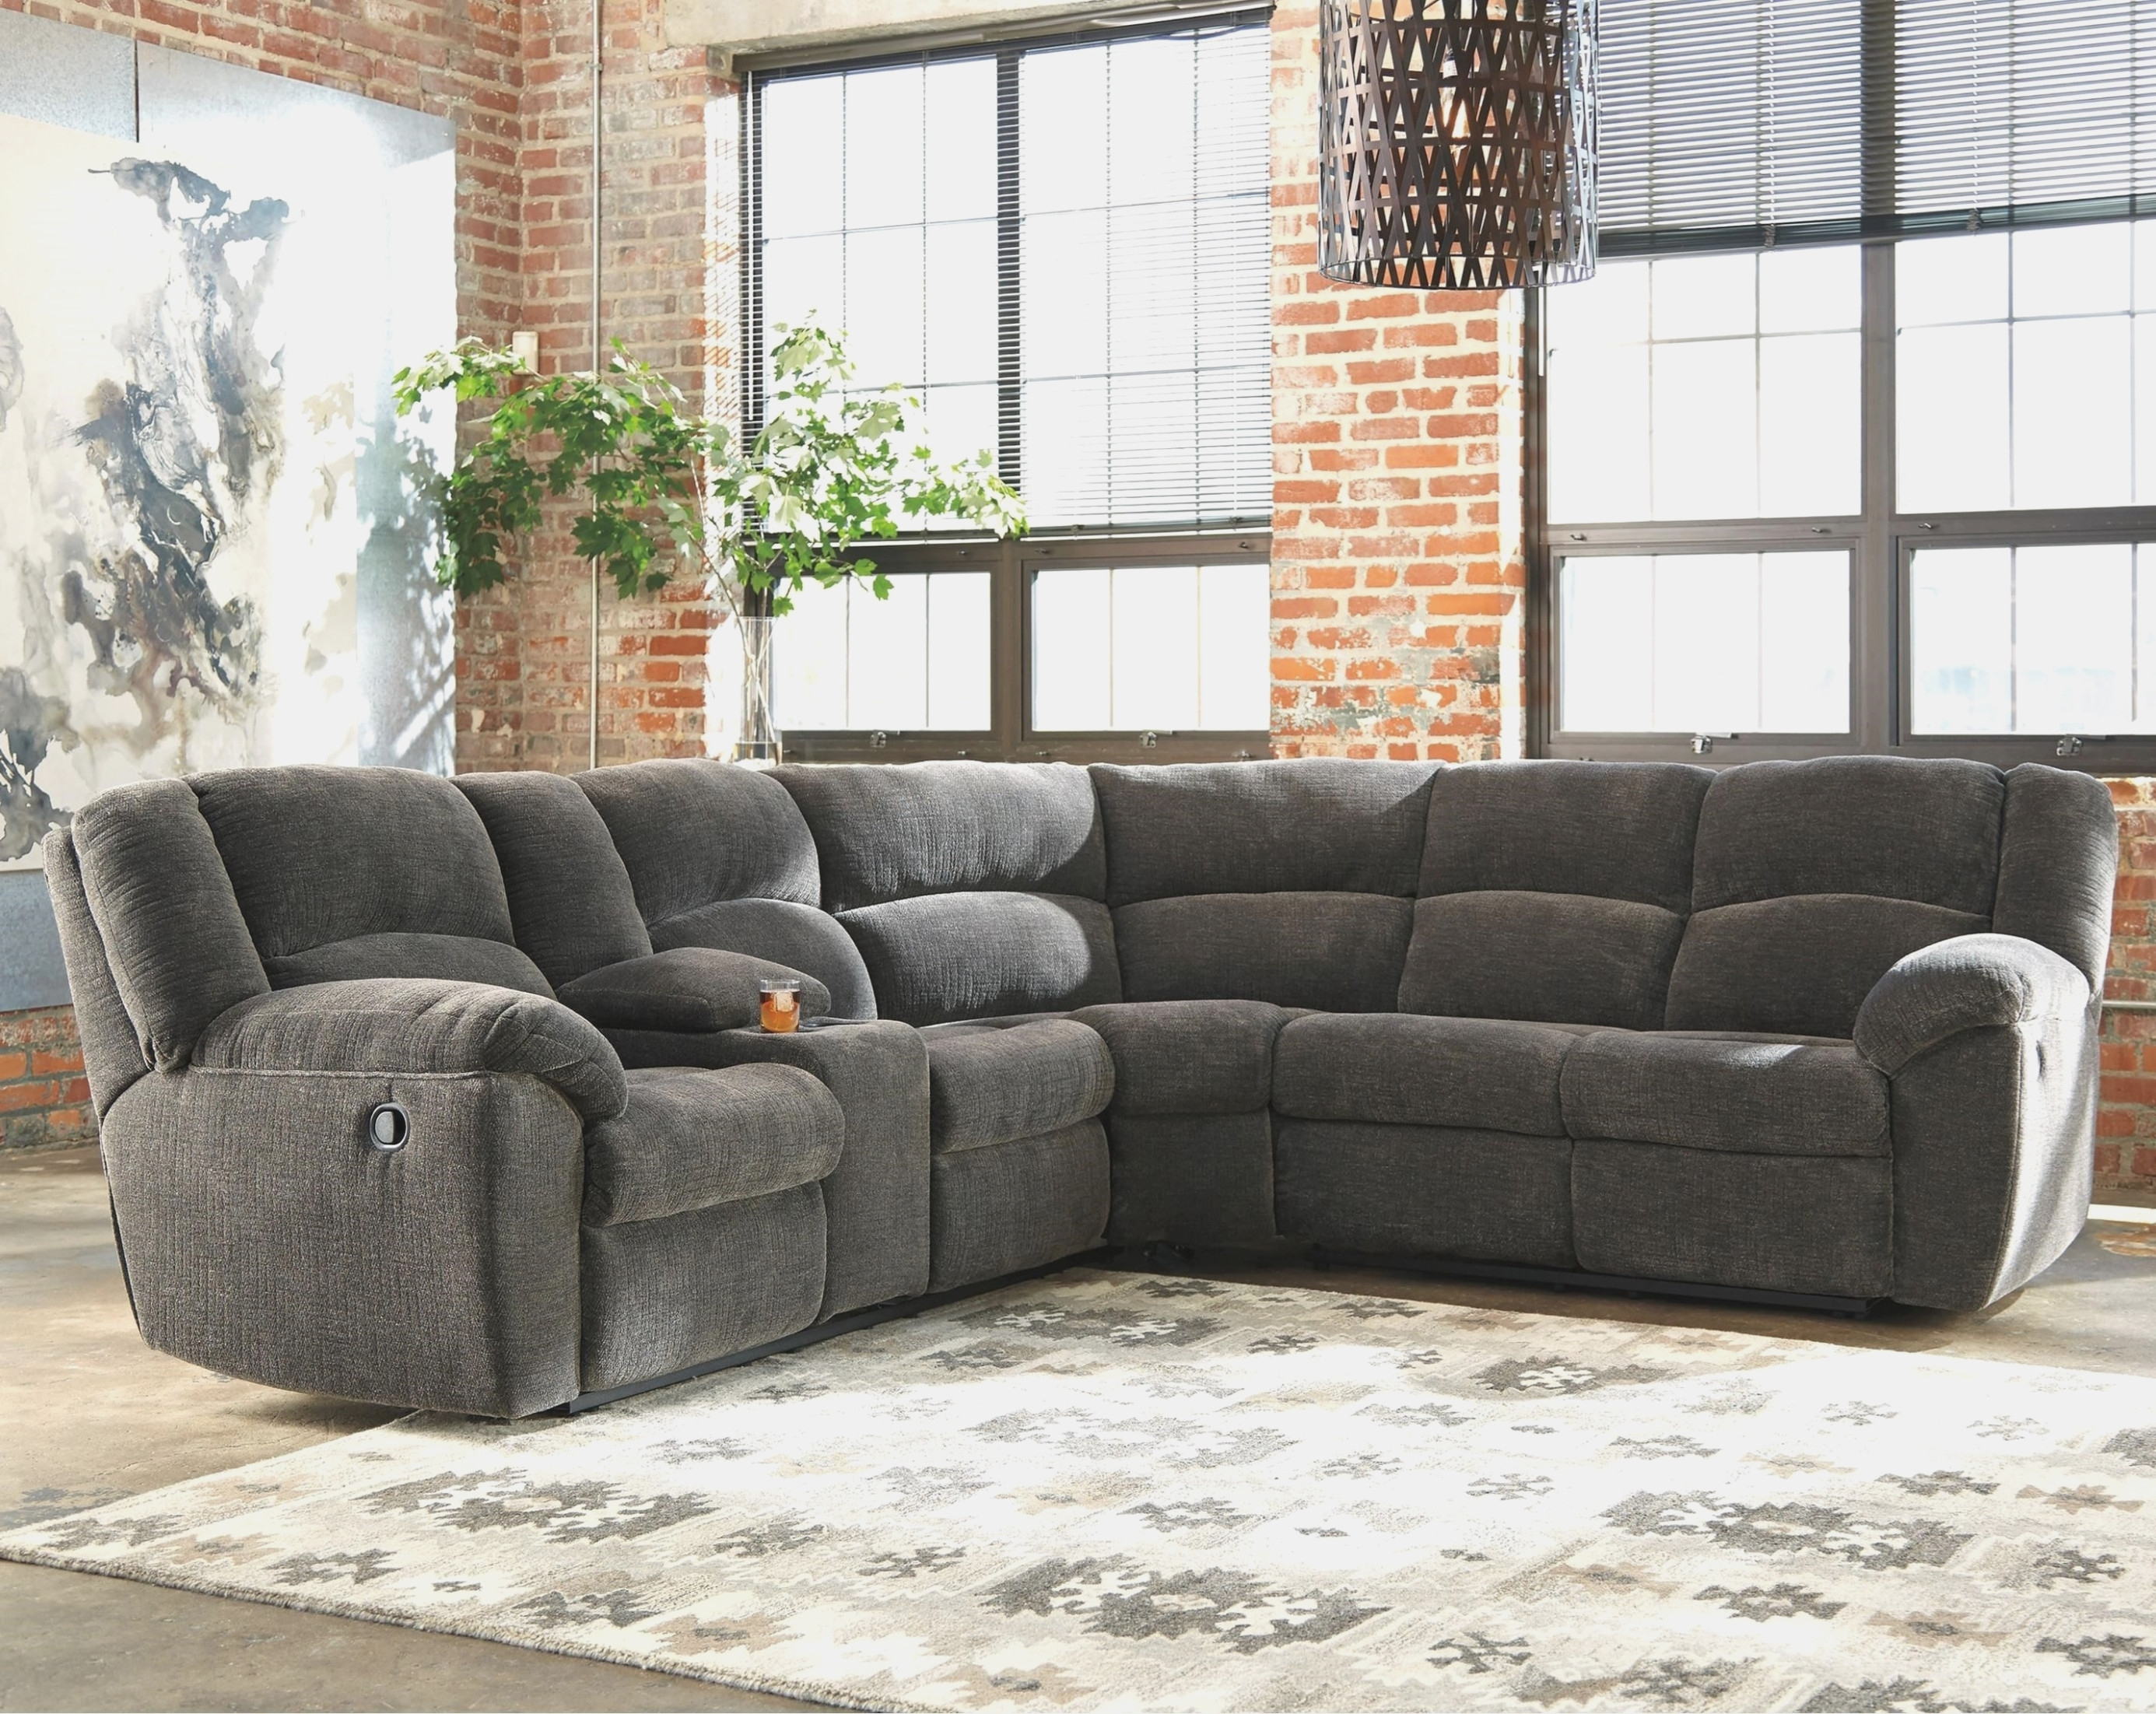 Fabric Sectional Sofa With Power Recliner | Baci Living Room with Declan 3 Piece Power Reclining Sectionals With Left Facing Console Loveseat (Image 13 of 30)